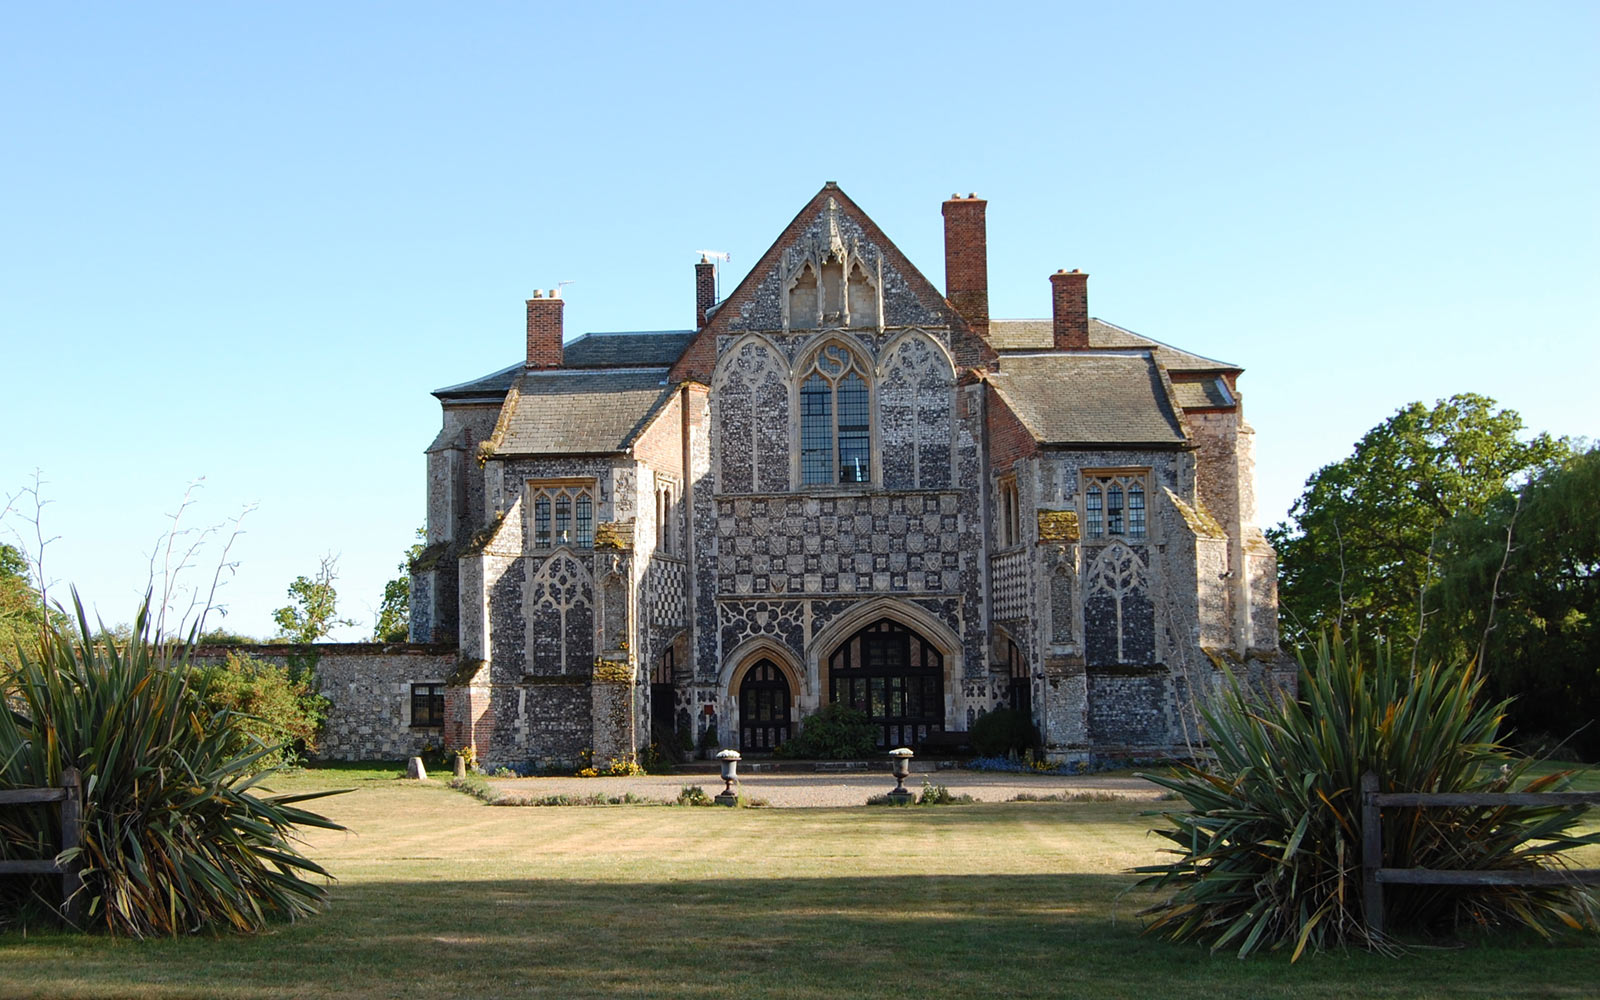 Suffolk, 12th century abbey country house